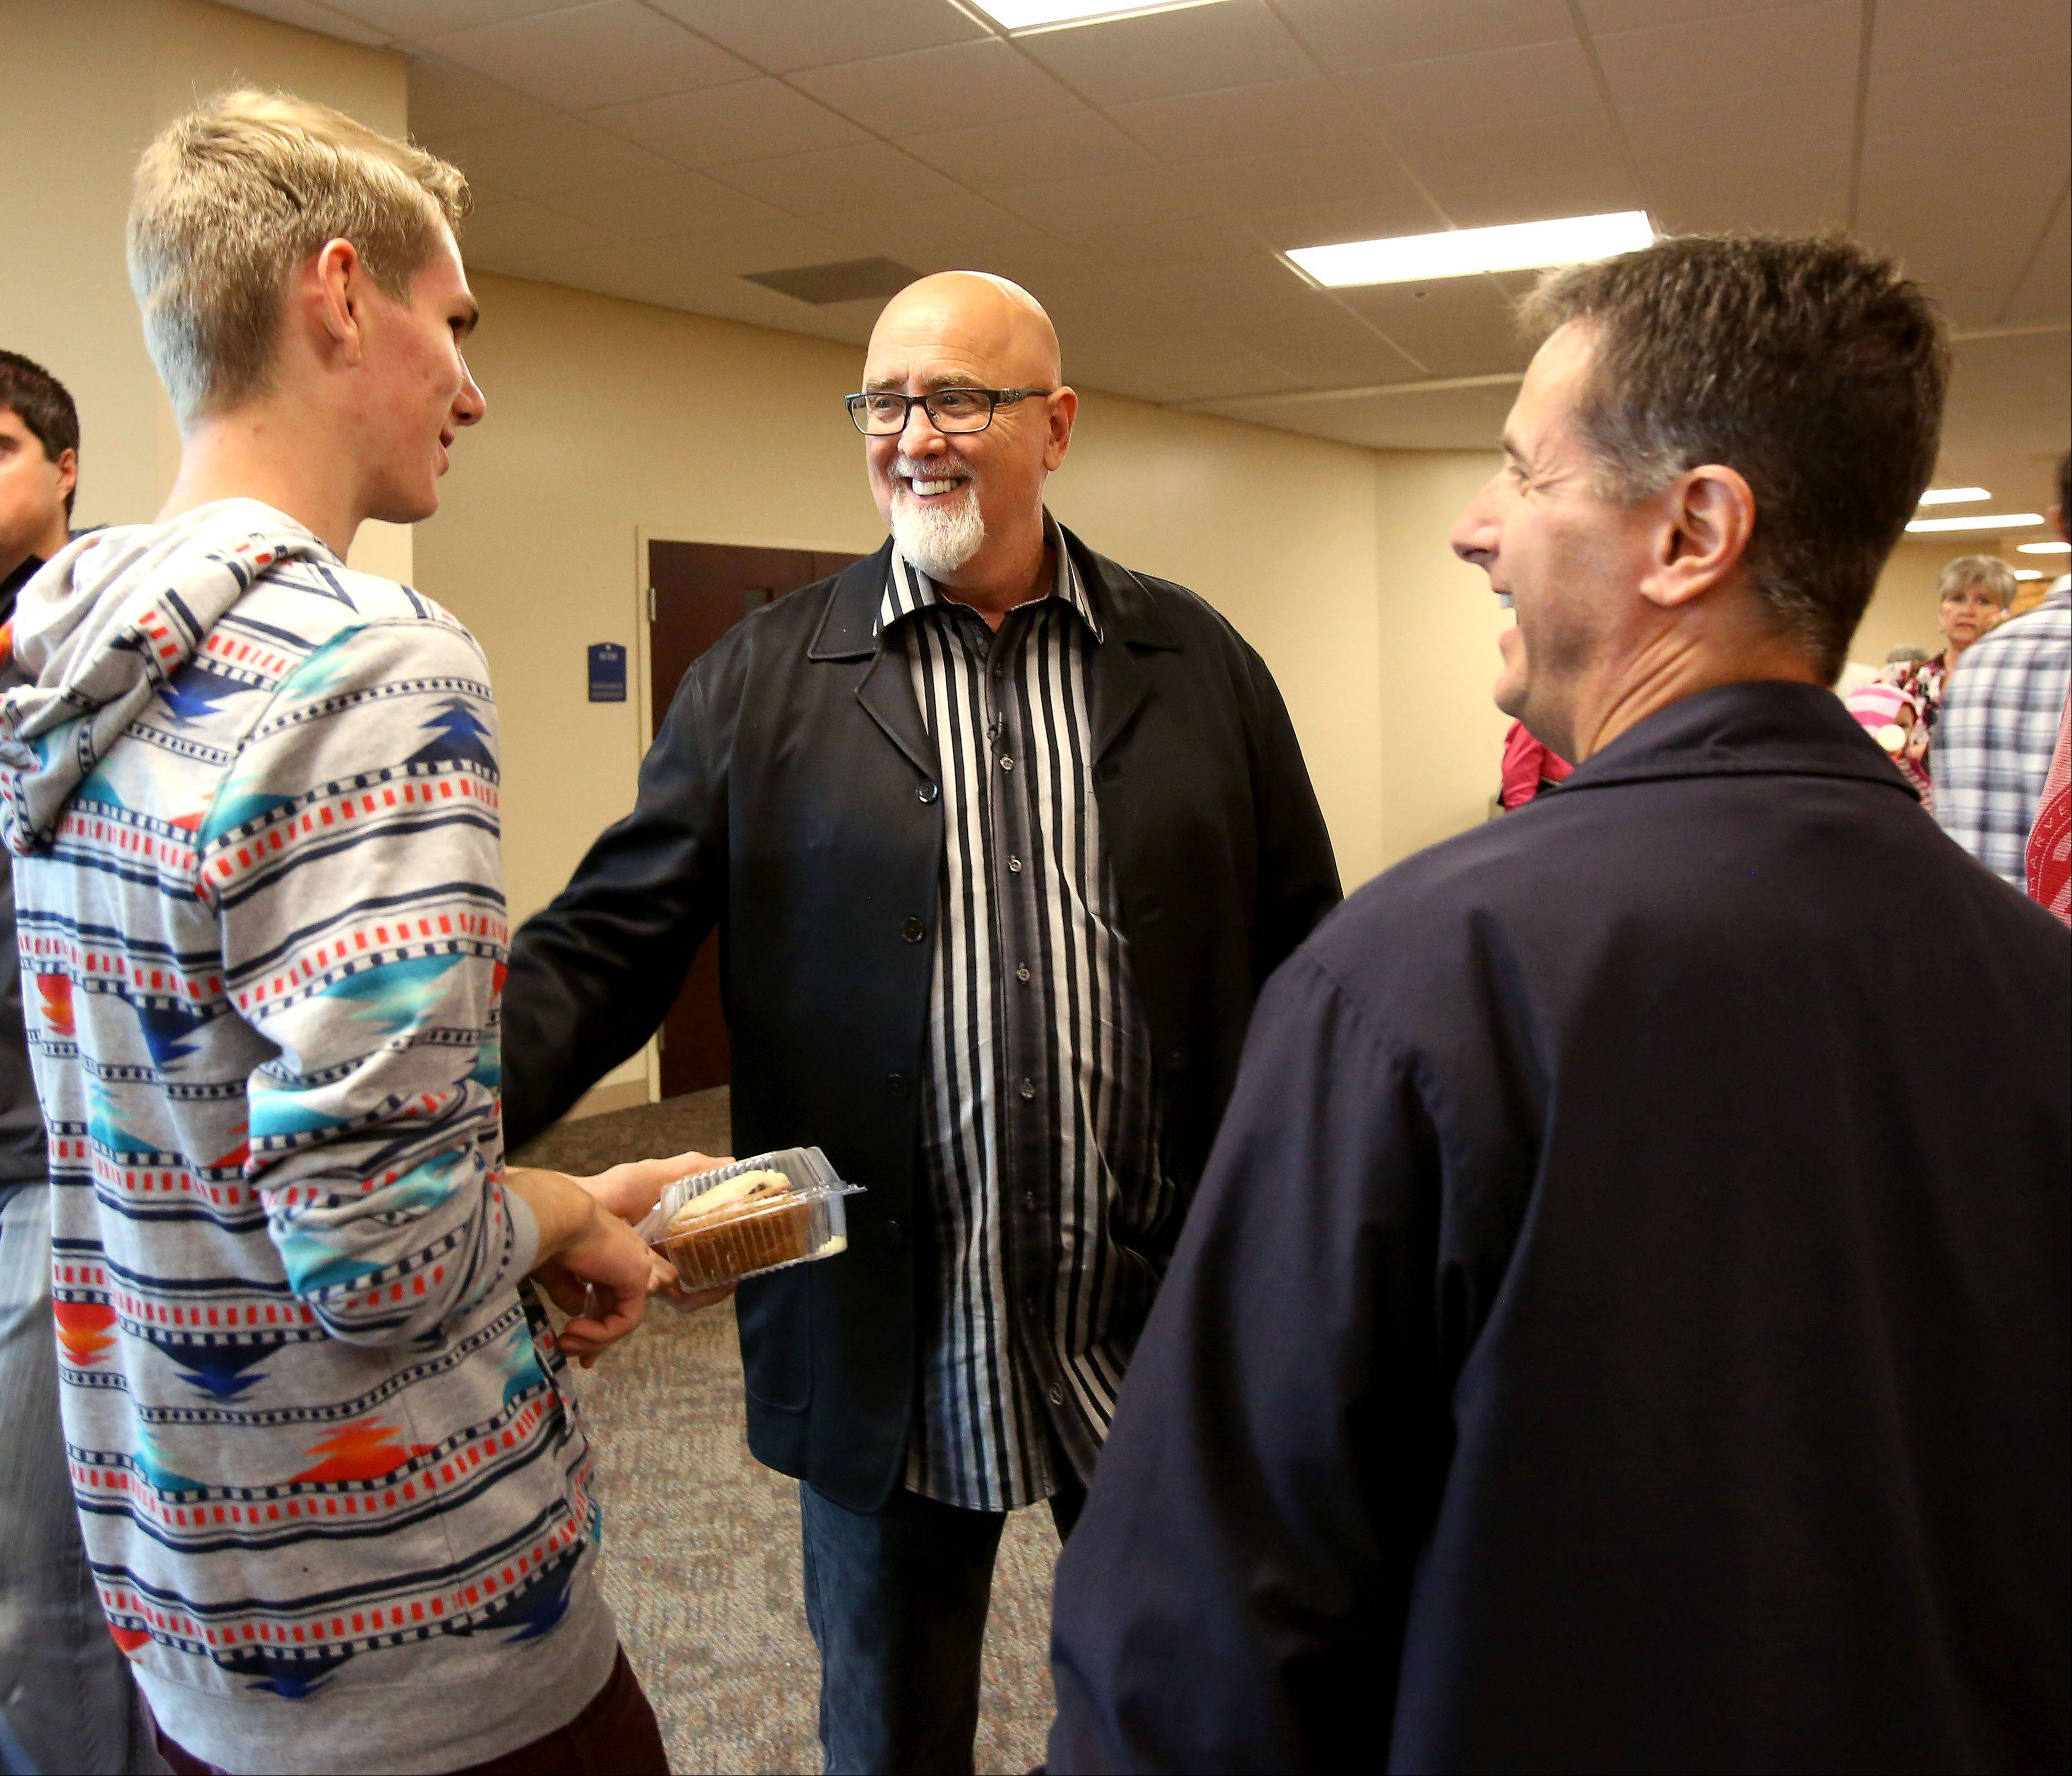 Pastor James MacDonald, center, welcomes Bob Heck of Algonquin and his son Tyler, 16, left, to the Harvest Bible Chapel in Elgin.